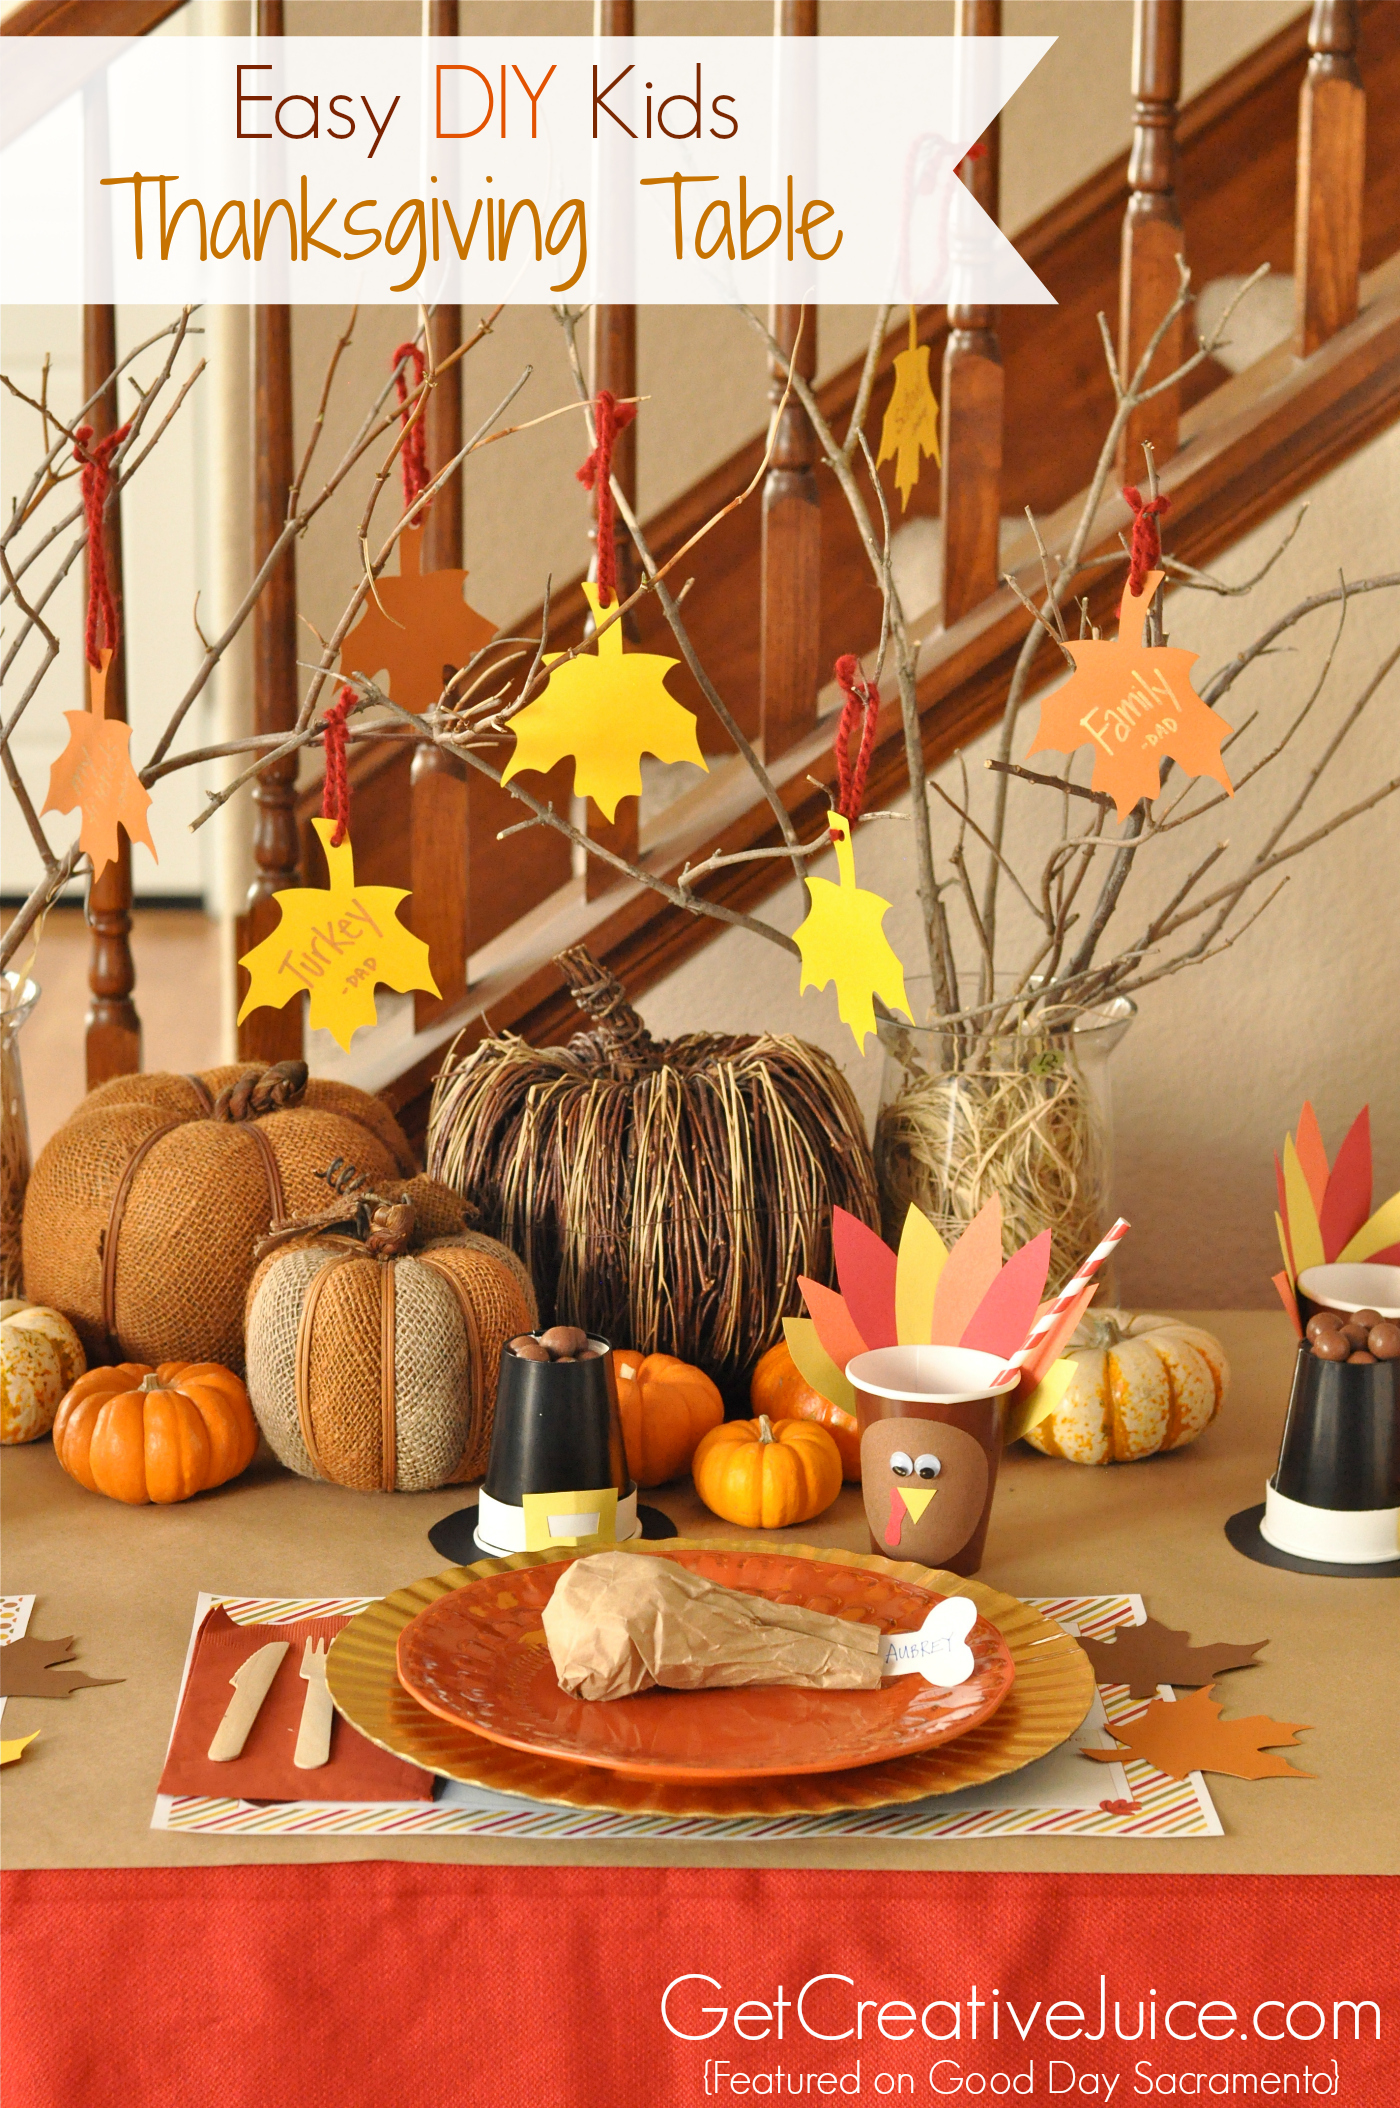 Easy diy kids thanksgiving table ideas creative juice Cheap thanksgiving table setting ideas